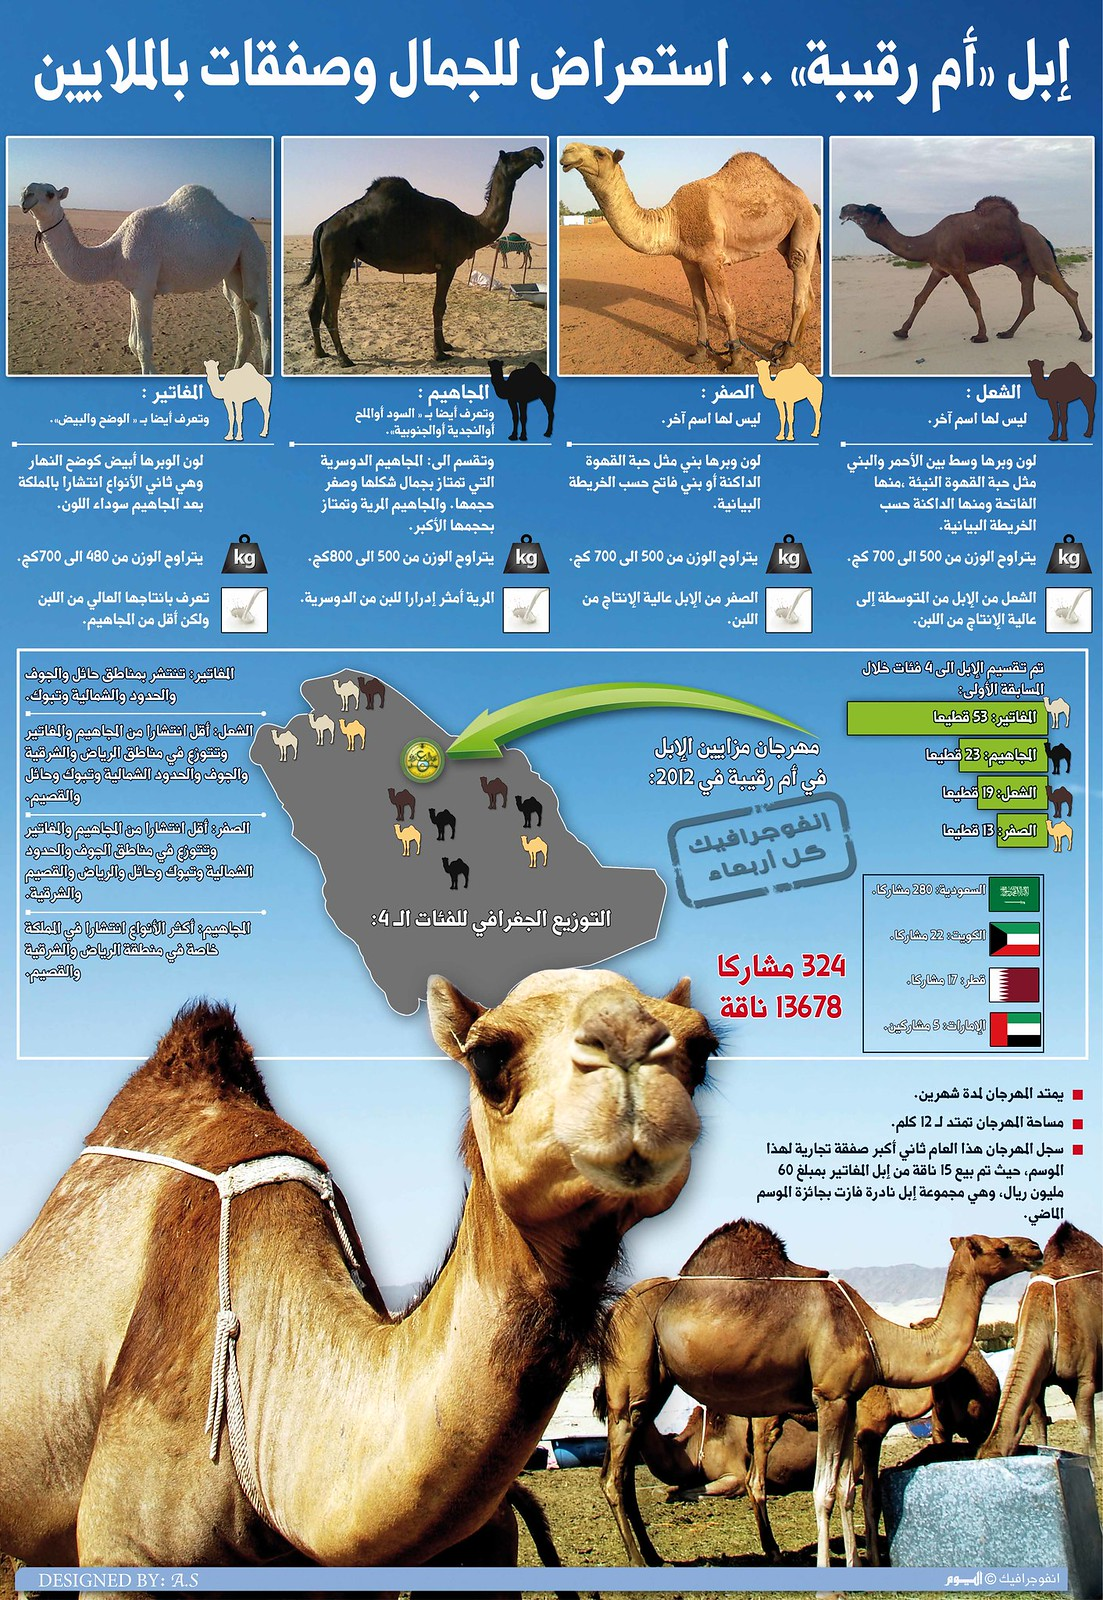 The most beautiful camel in Arab gulf, infographic by Amr Elsawy